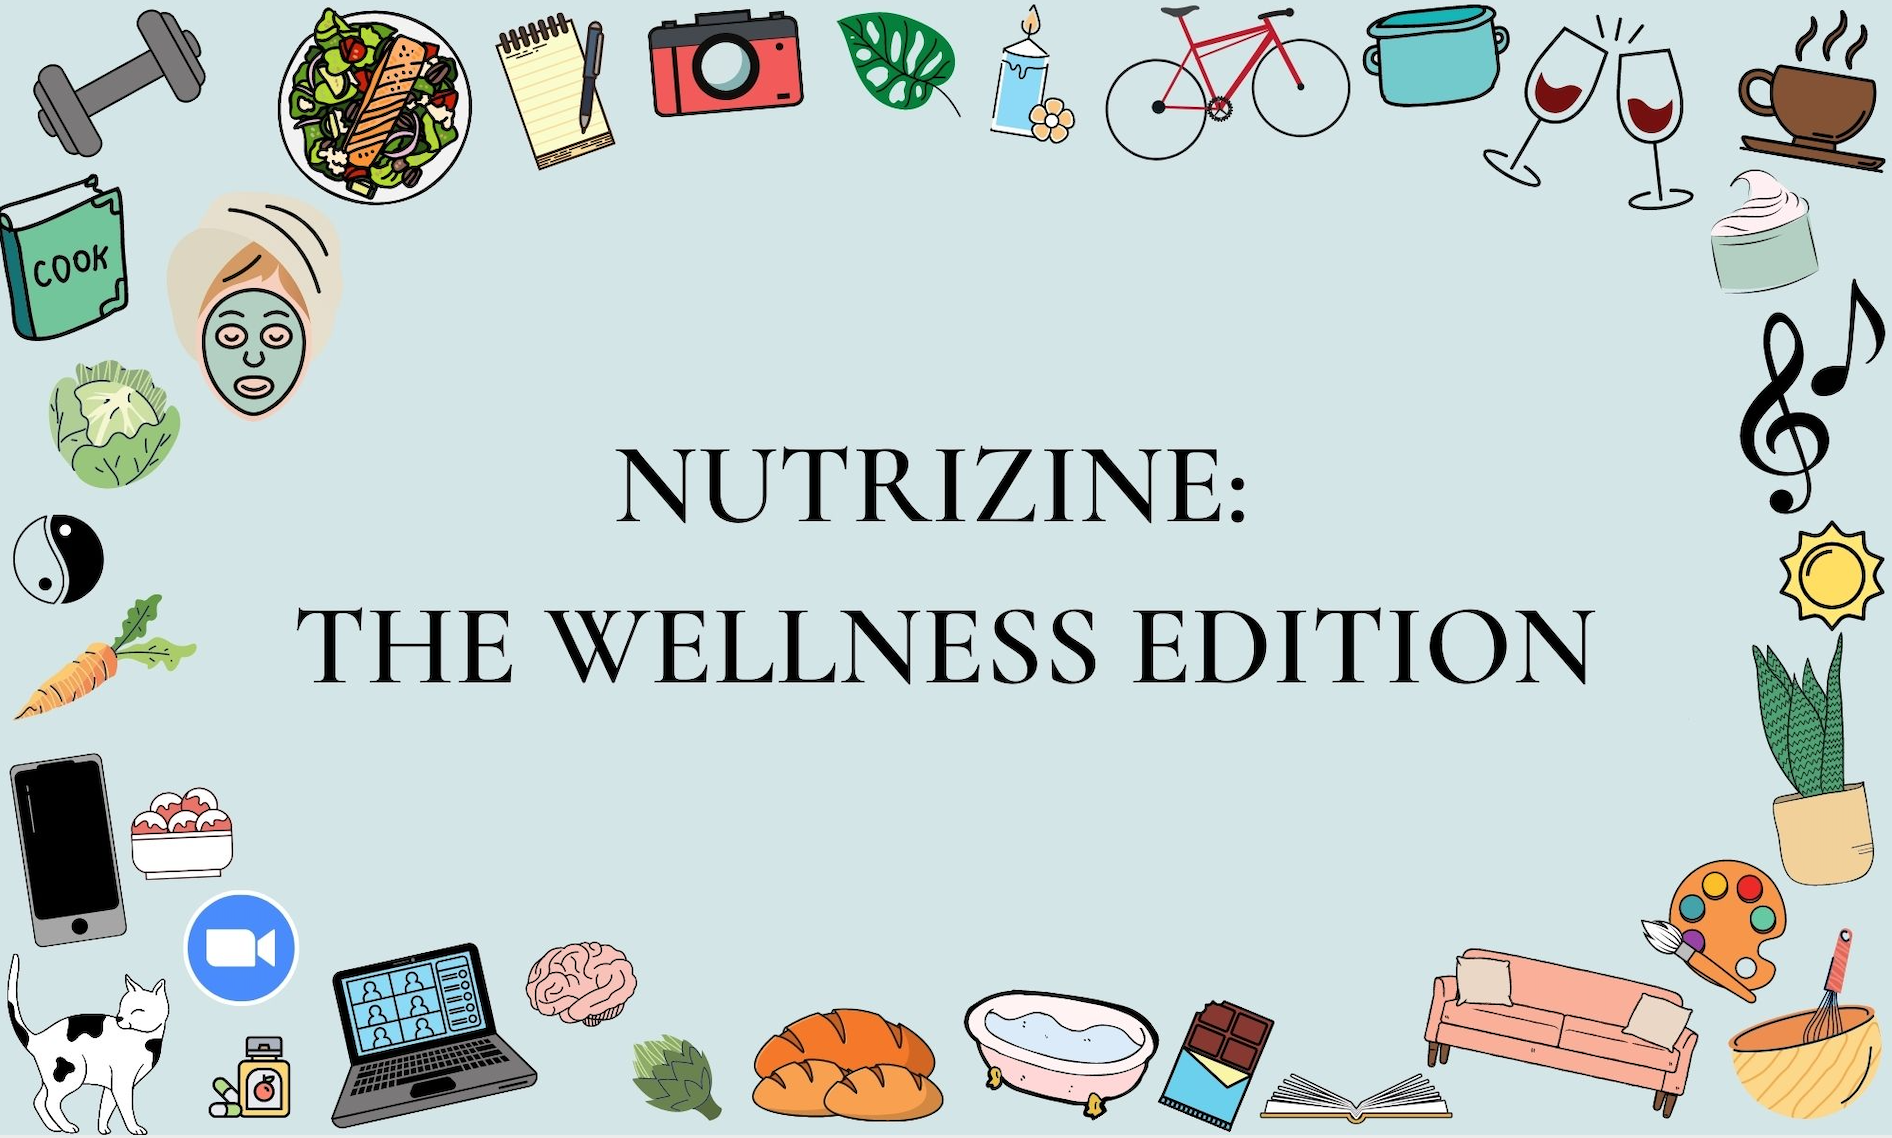 Photo of nutrizine wellness edition title page